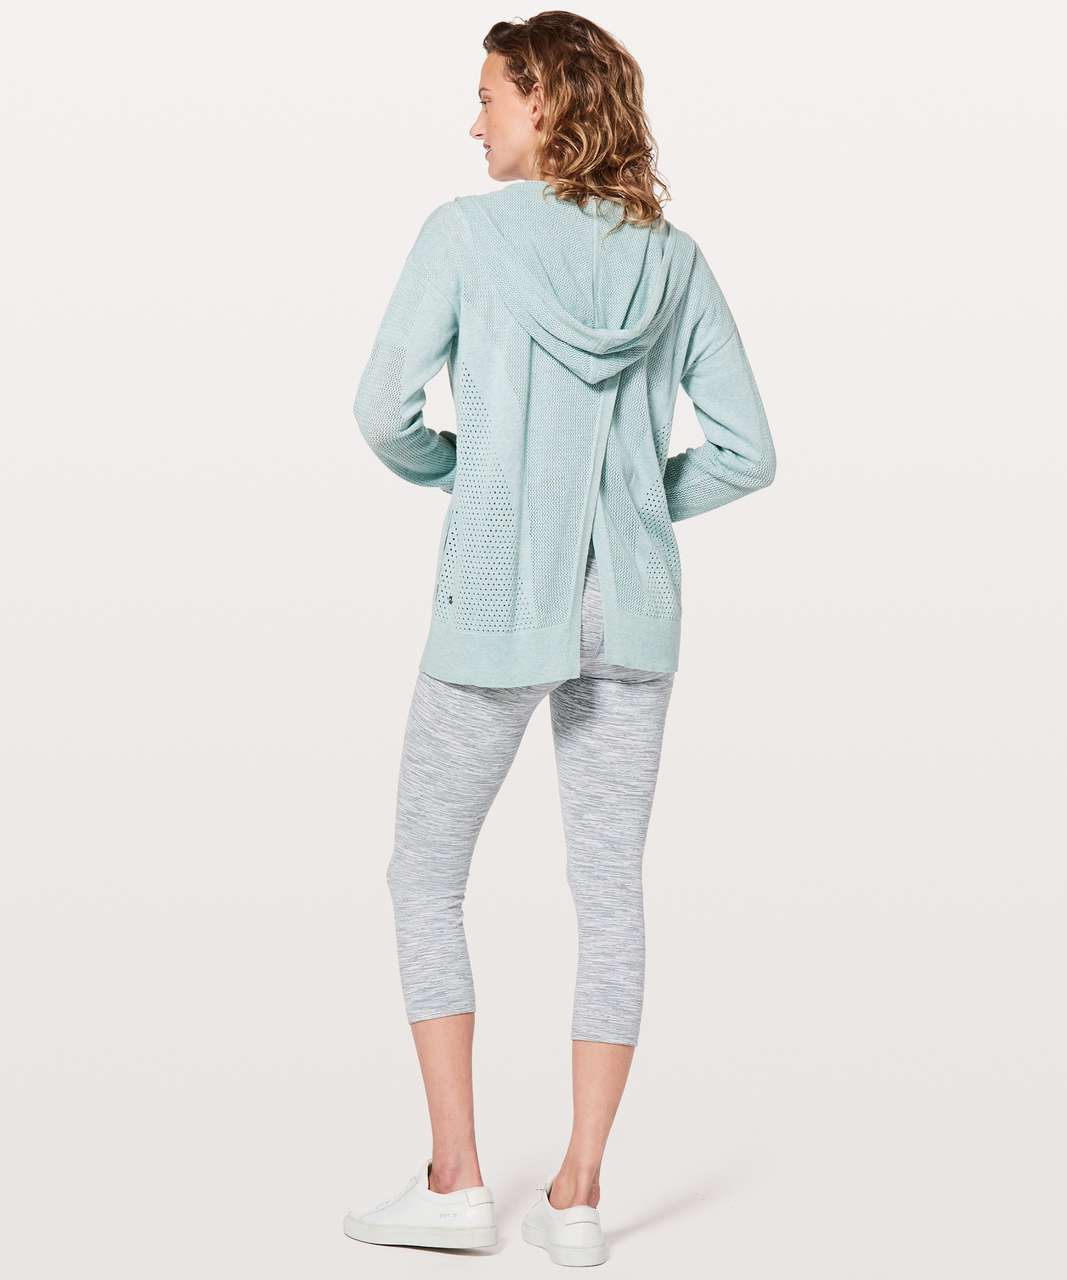 Lululemon Still Movement Wrap - Heathered Frosty